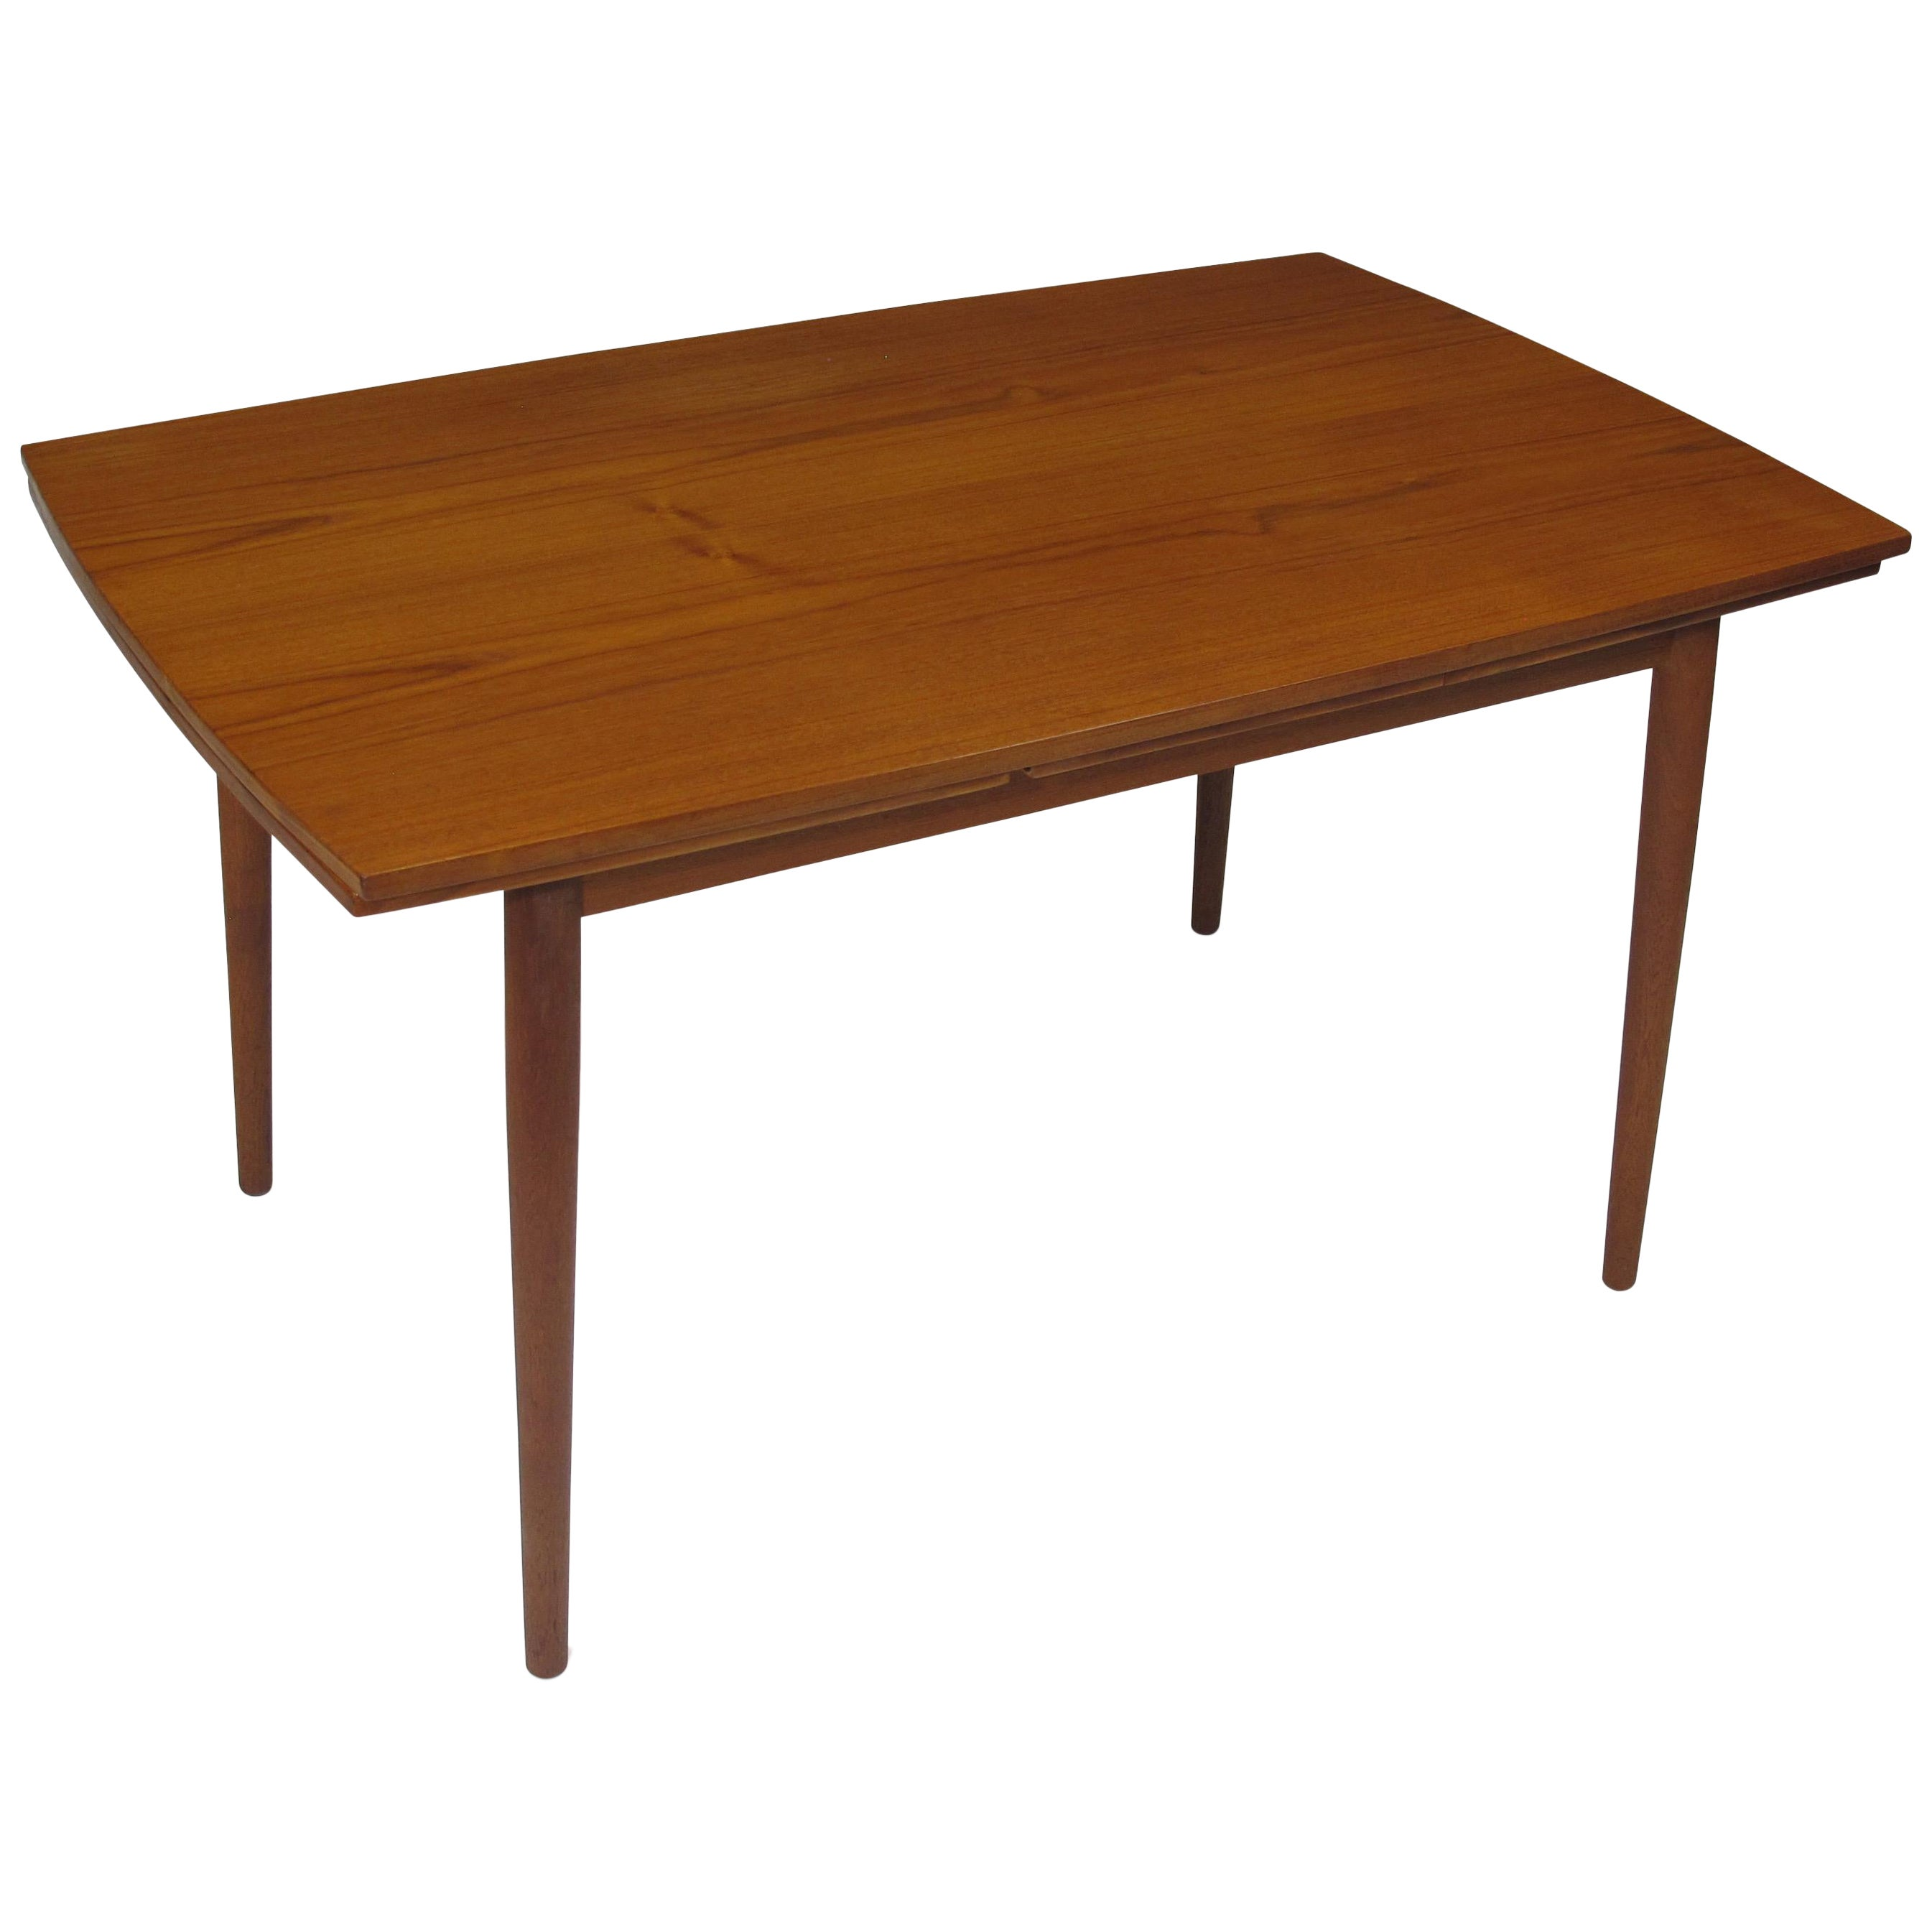 Danish Teak Draw Leaf Table